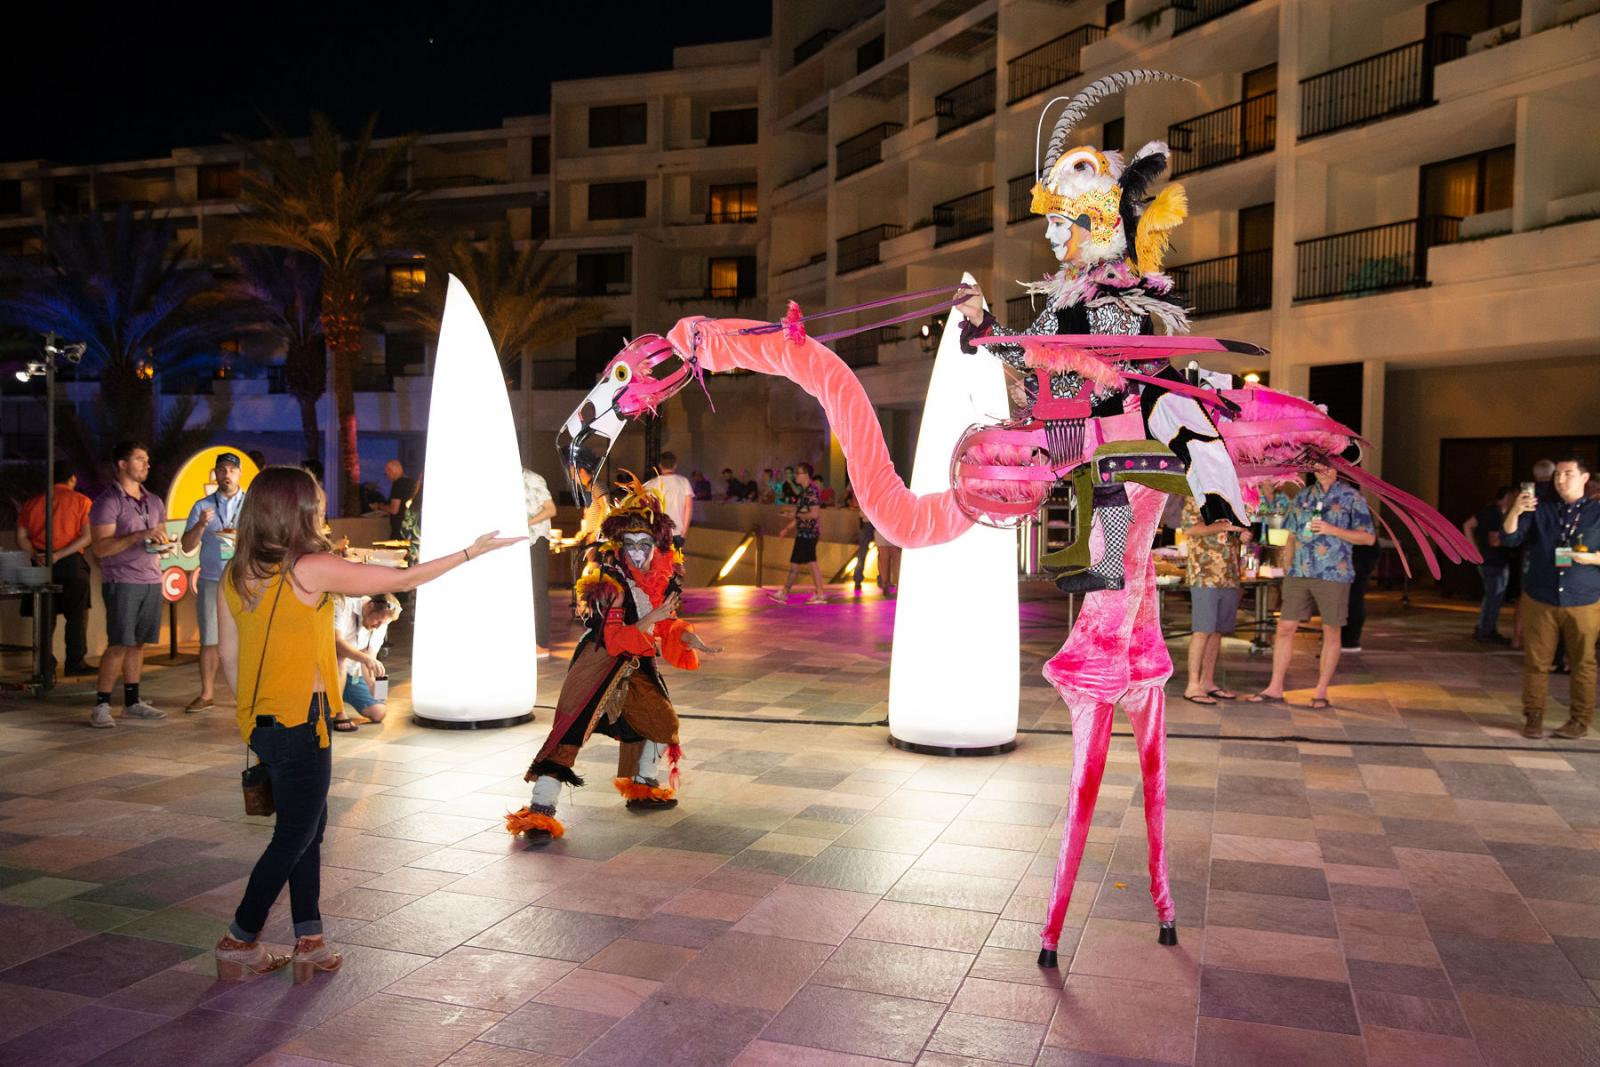 A flamingo-dressed stilt walker greets guests at the Desert Glow party.